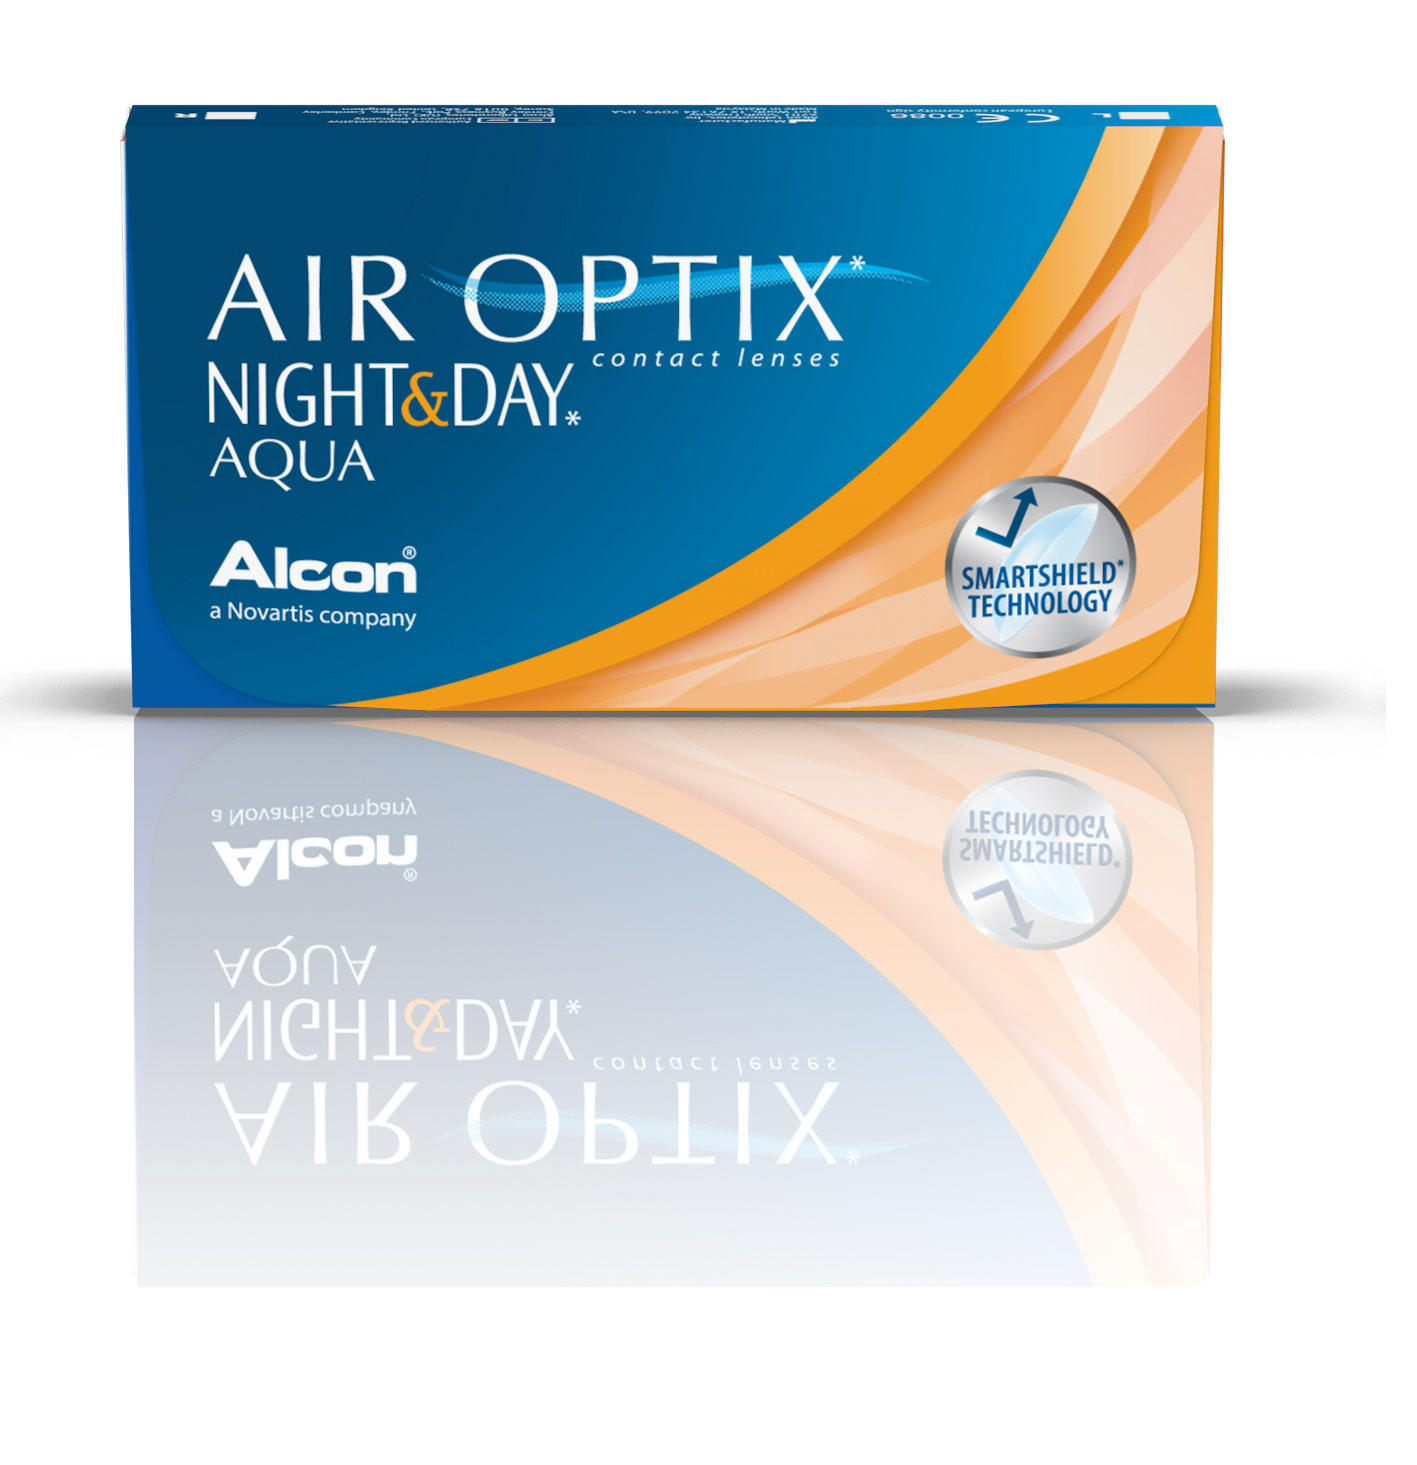 AIR OPTIX NIGHT&DAY.jpg